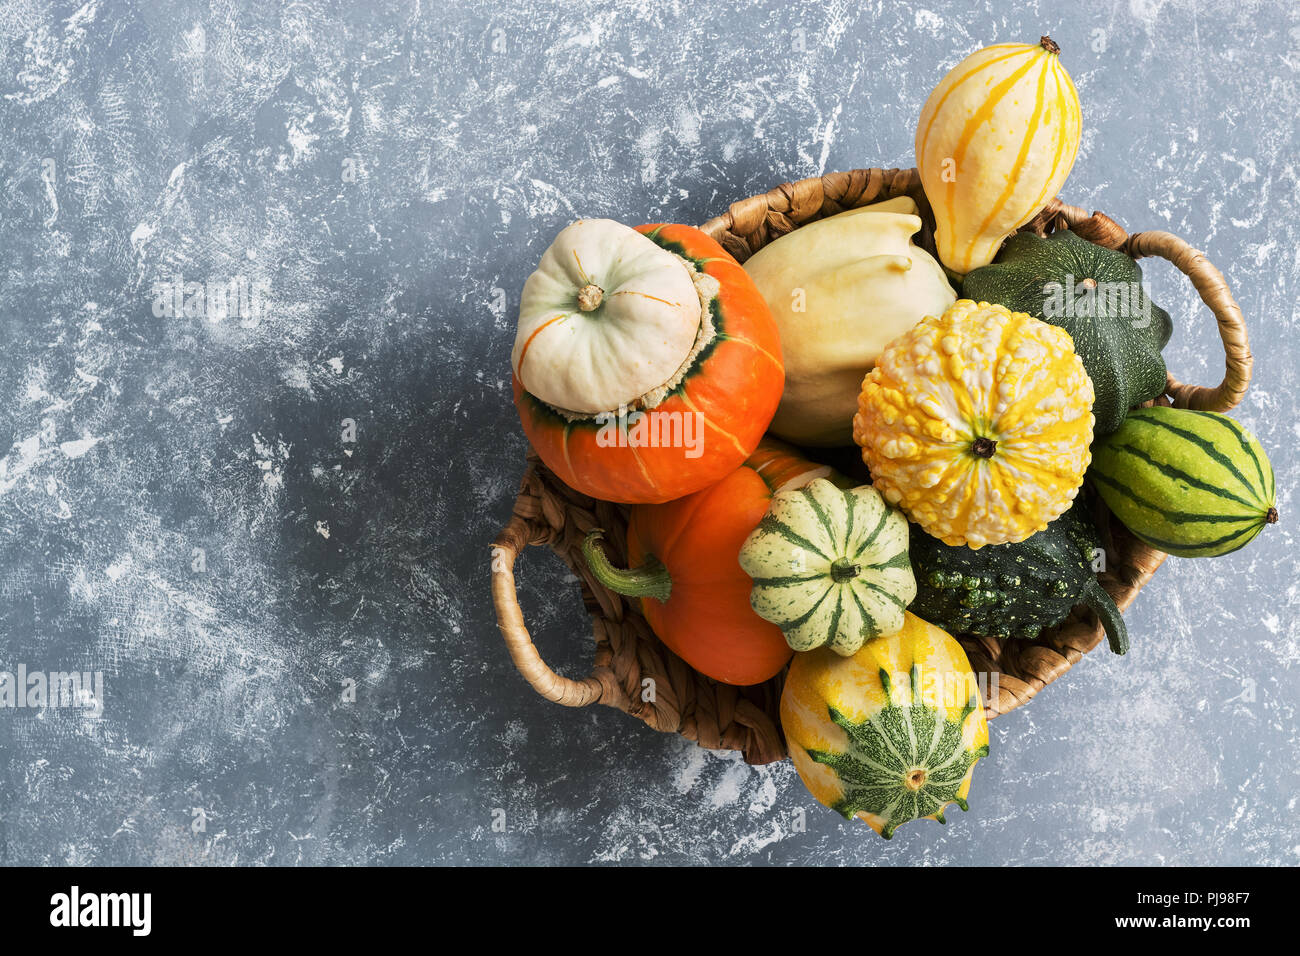 Collection of various colorful pumpkins in a basket on a gray background. Top view, copy space. Stock Photo